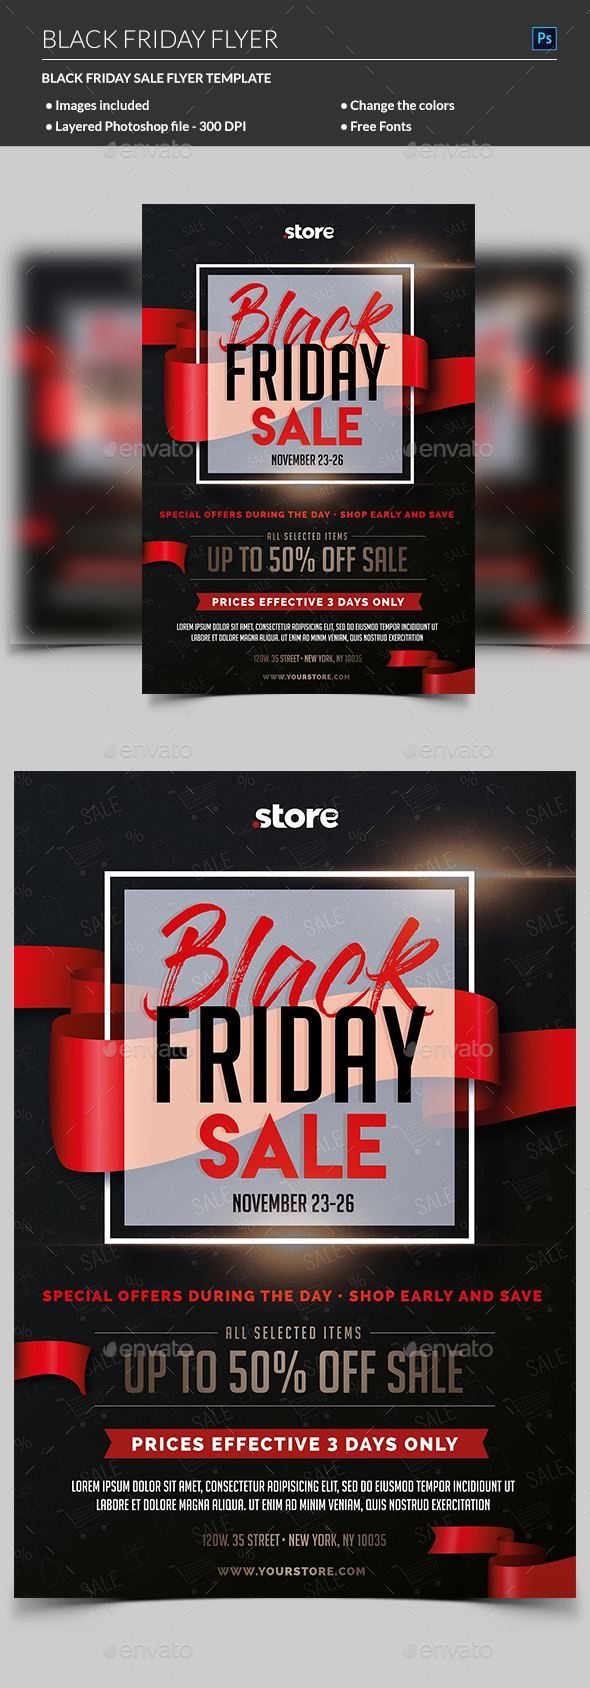 Black Friday Sale Flyer - Commerce Flyers